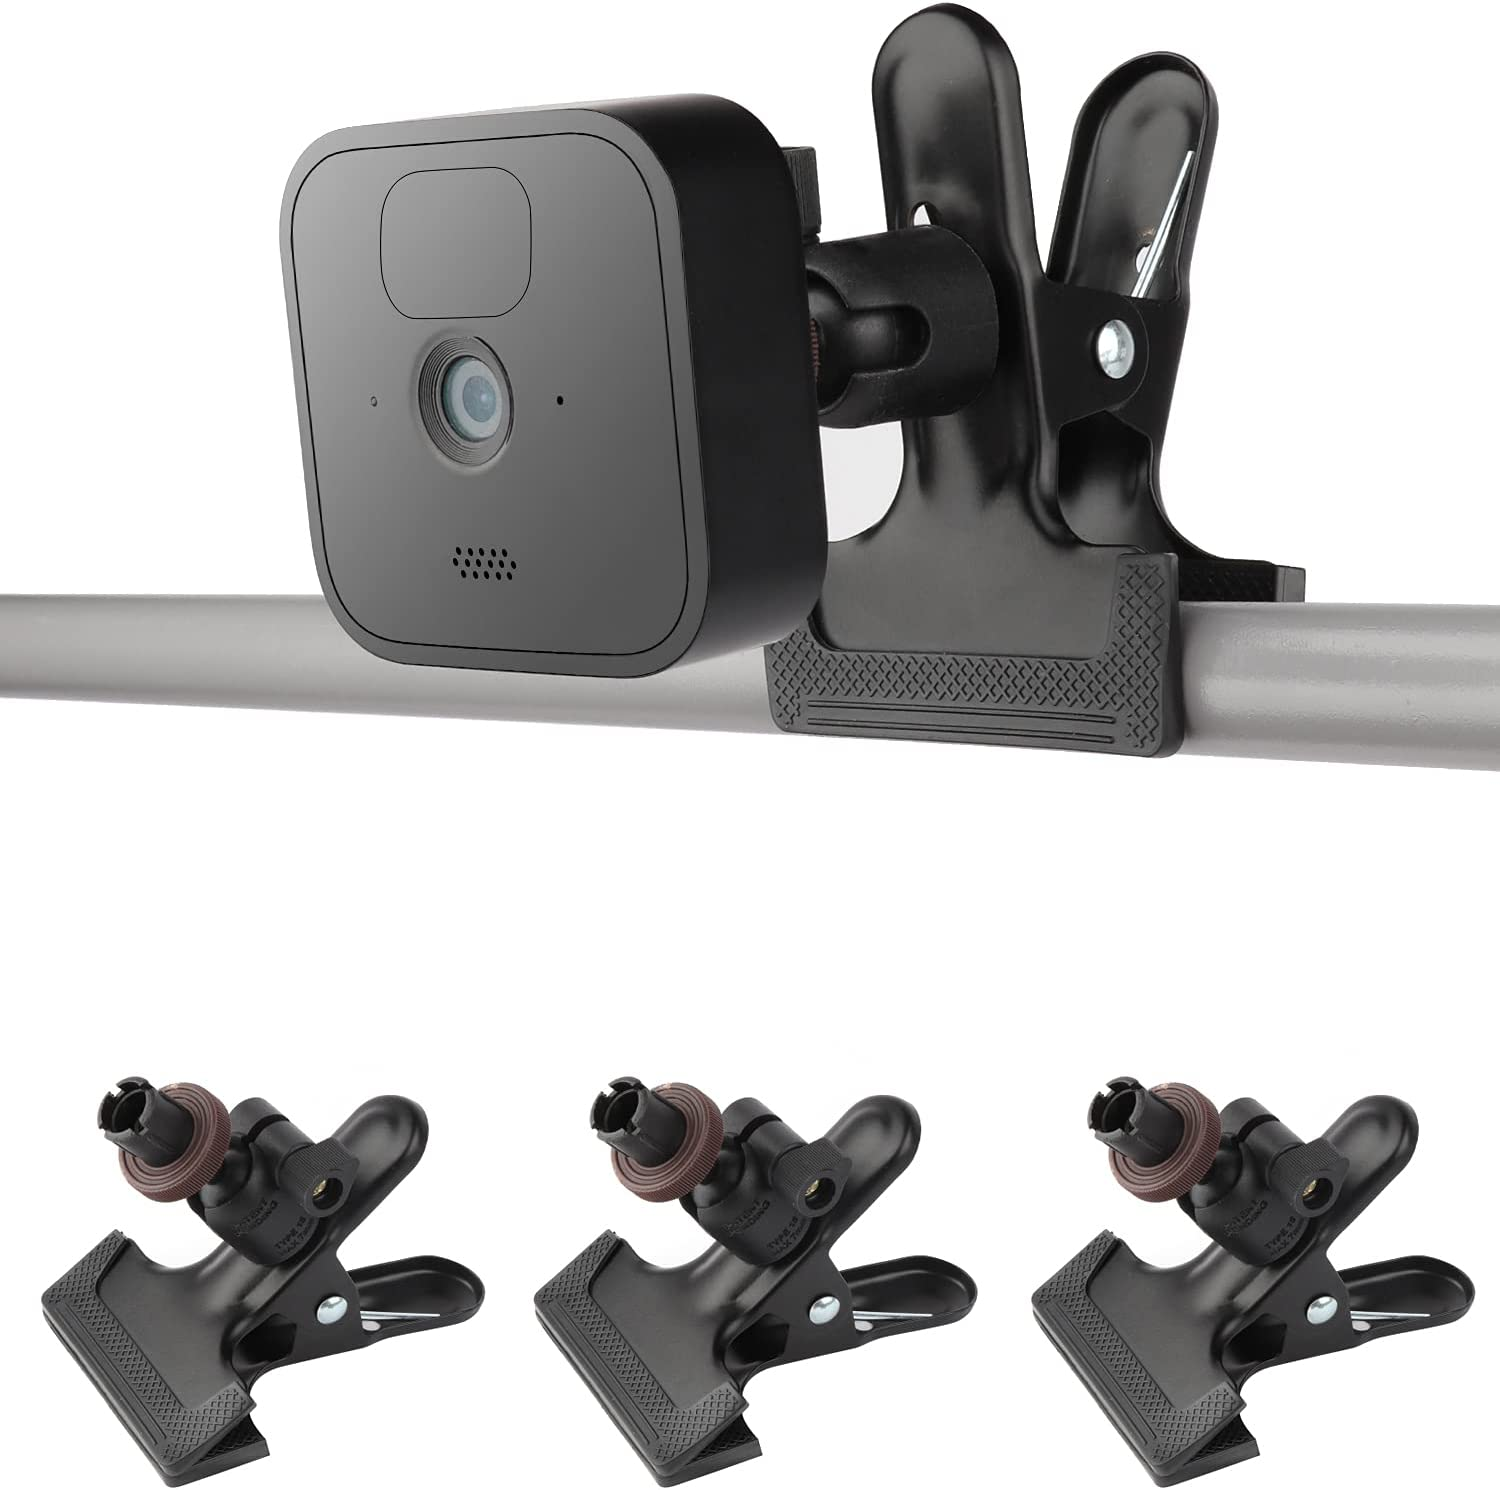 iTODOS 3 Pack Clip Clamp Mount for Blink XT,Blink XT2,Blink Mini,All-New Blink Outdoor, Metal Desk Clip Clamp Holder, Attach Your Blink Home Security Camera Wherever You Like Without Any Tools